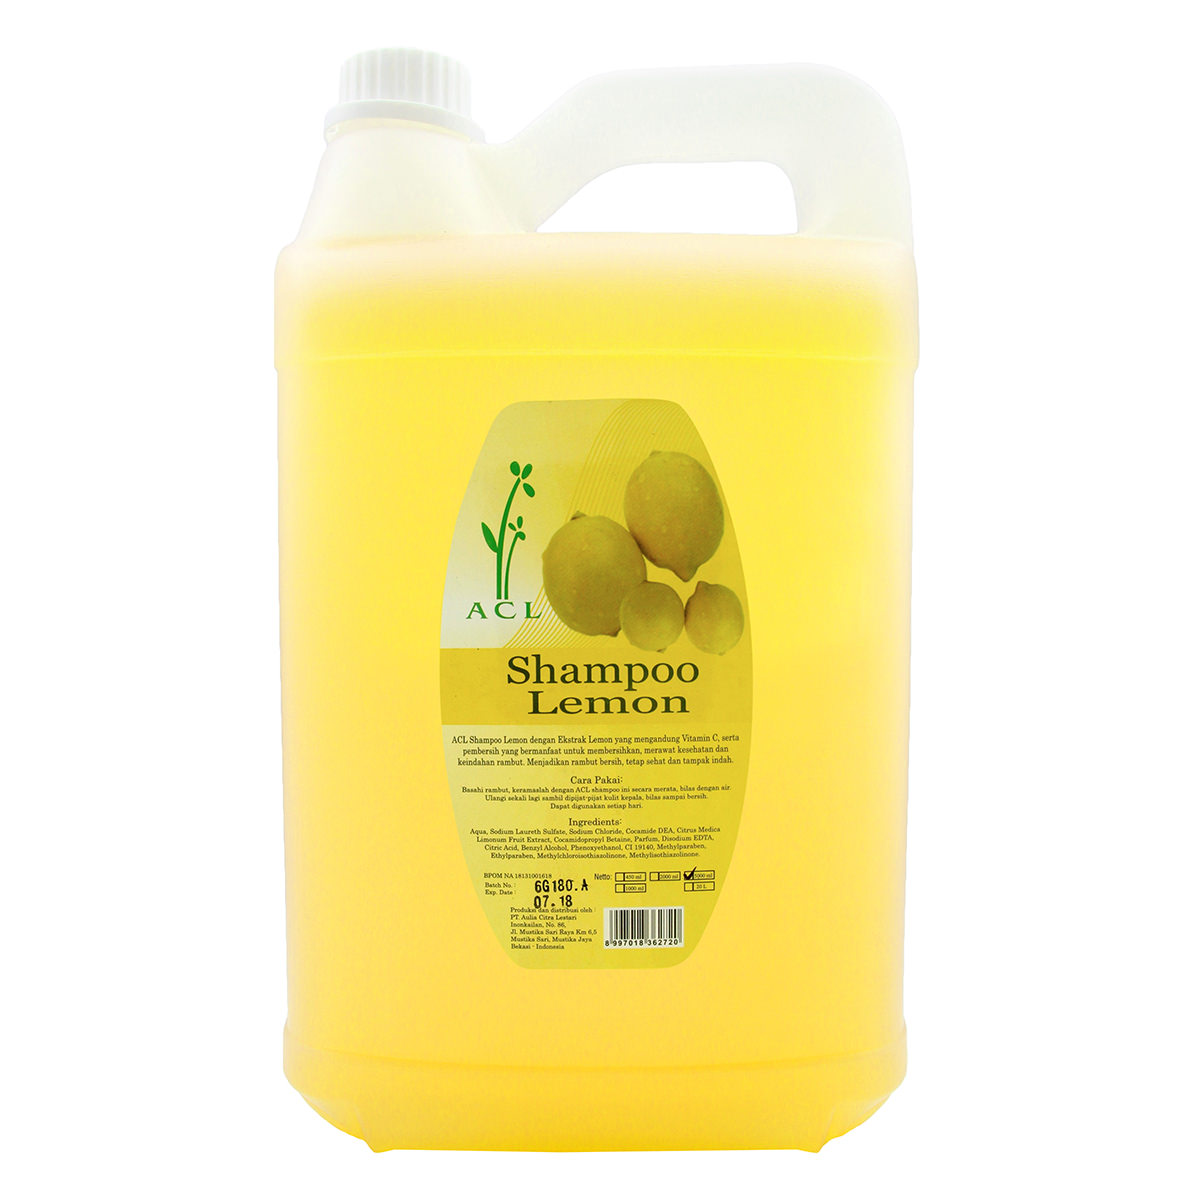 ACL - Shampoo Lemon (5000 ml)_sfw (1)